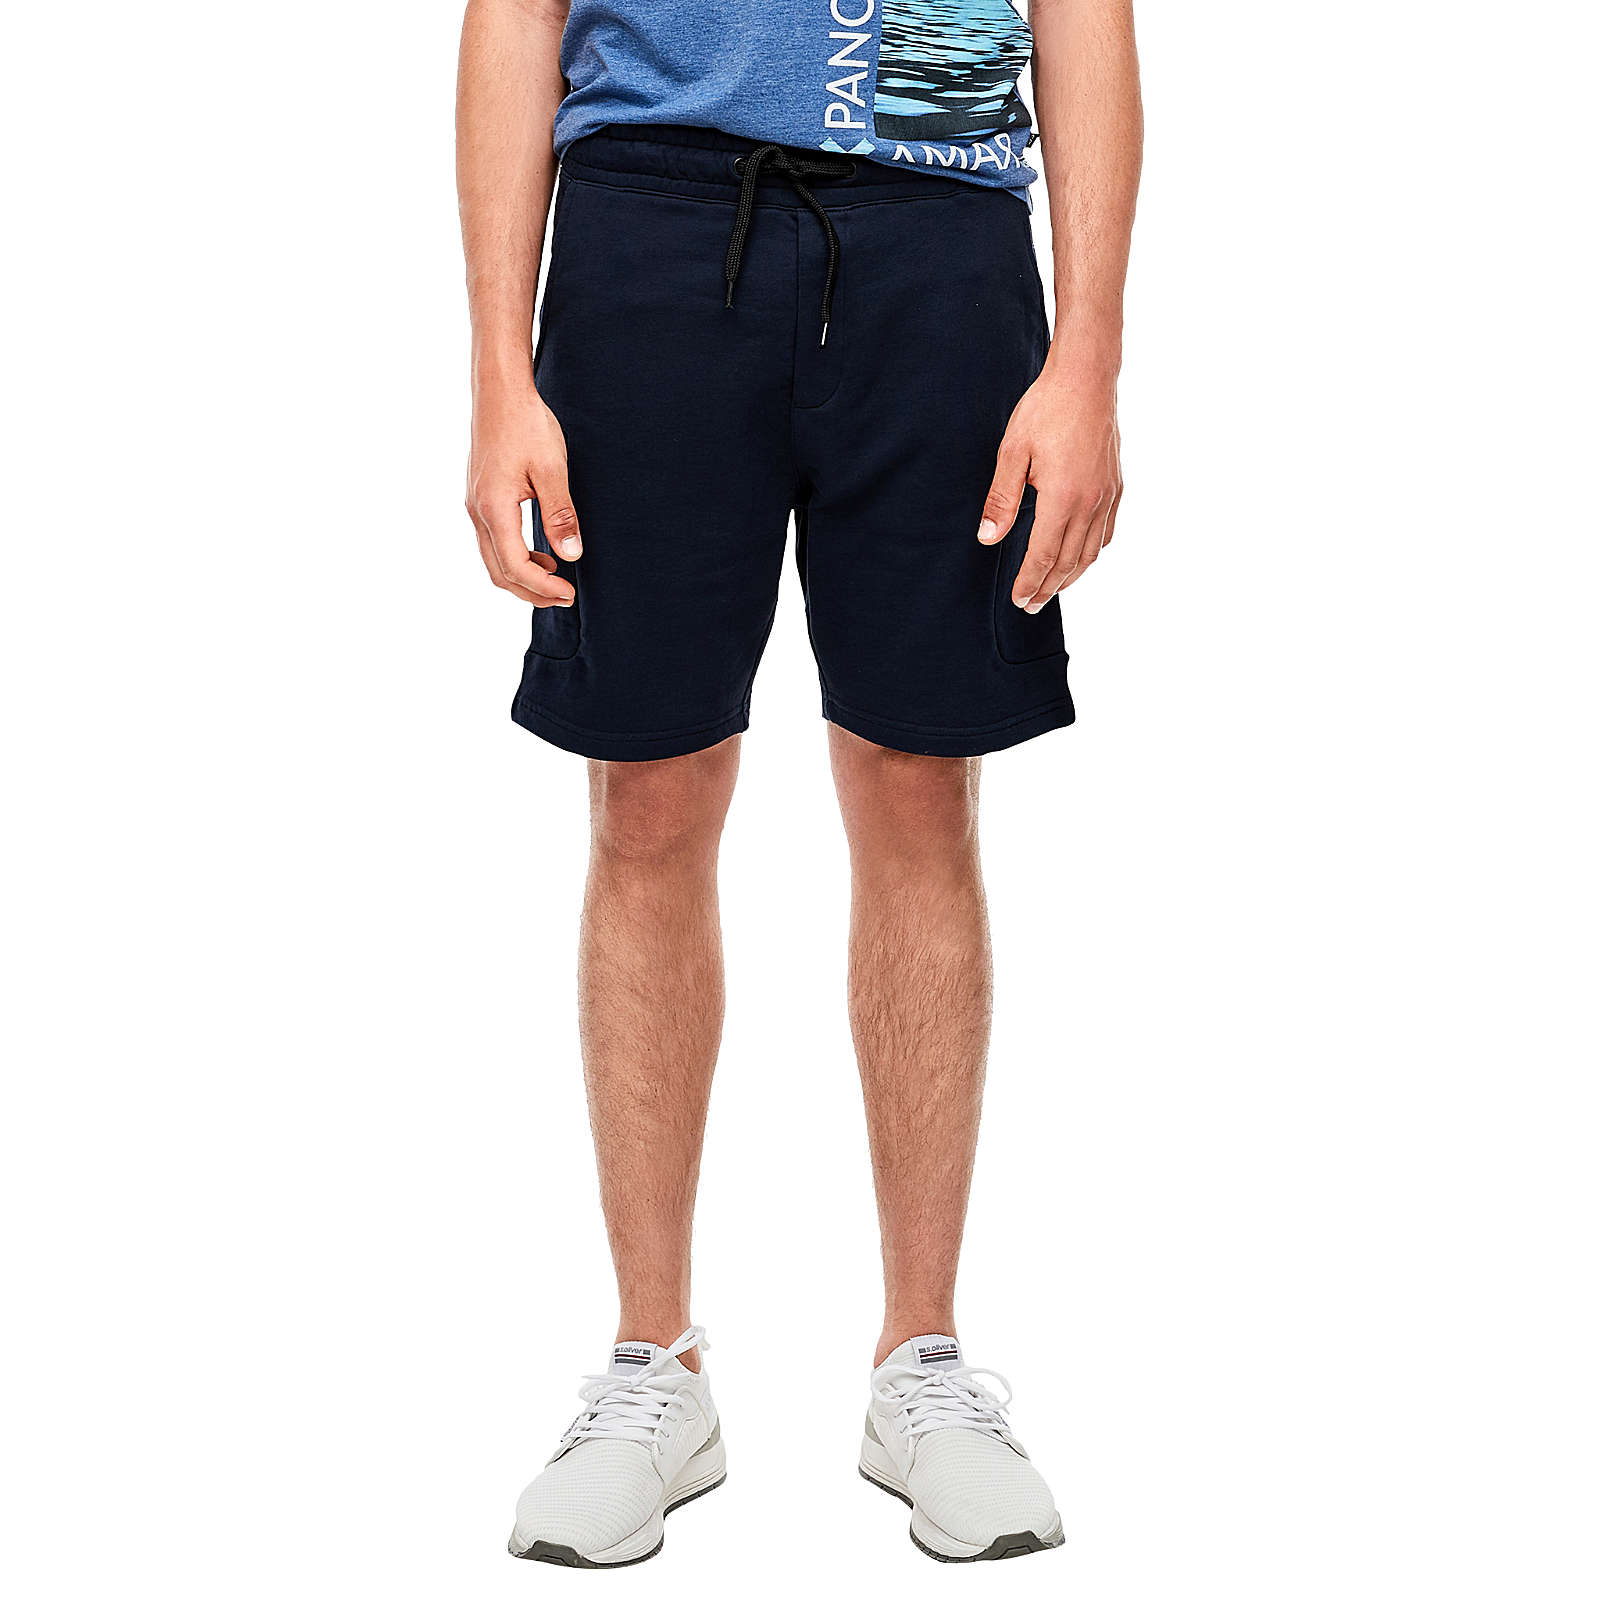 Q/S designed by Kurze Sweatpants mit Taschen Shorts blau Herren Gr. 44 von Q/S designed by